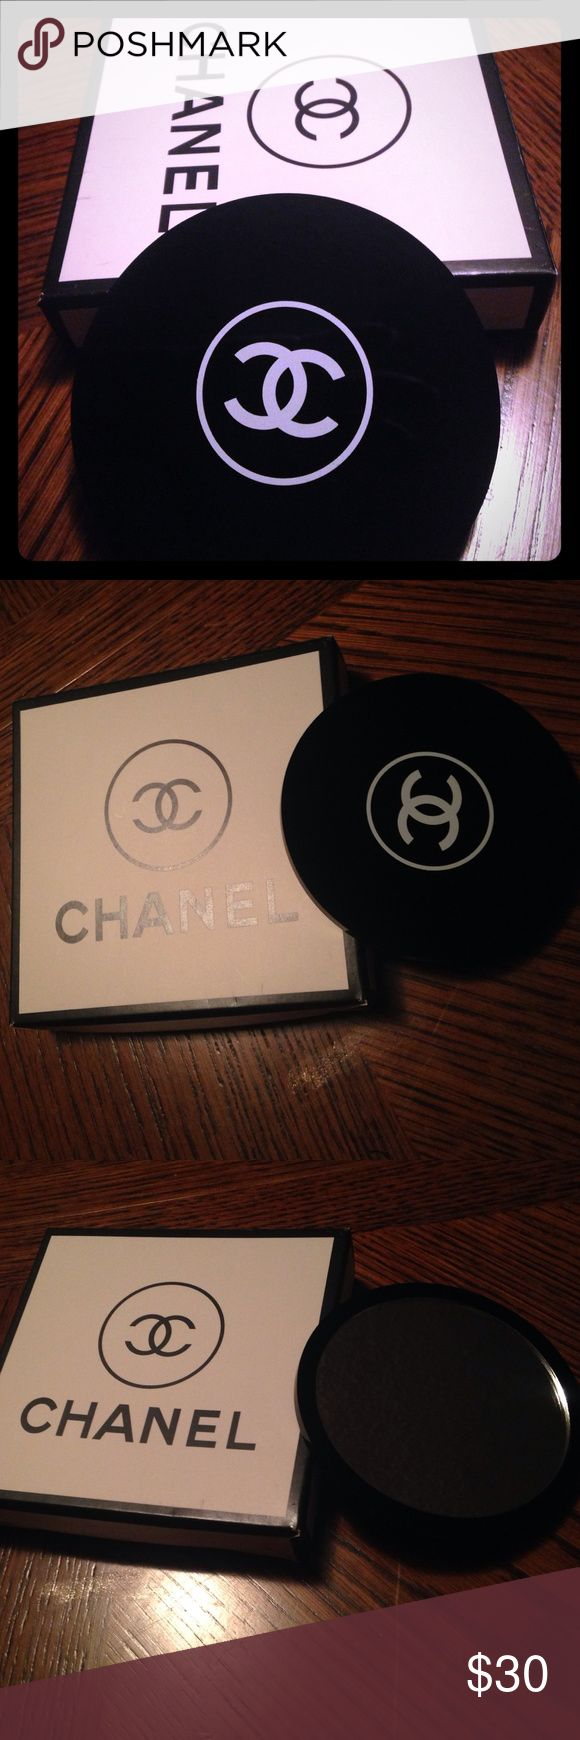 Auth Chanel Purse Makeup Mirror Measures Approx 375 Inches In Dia Great  Little Mirror For